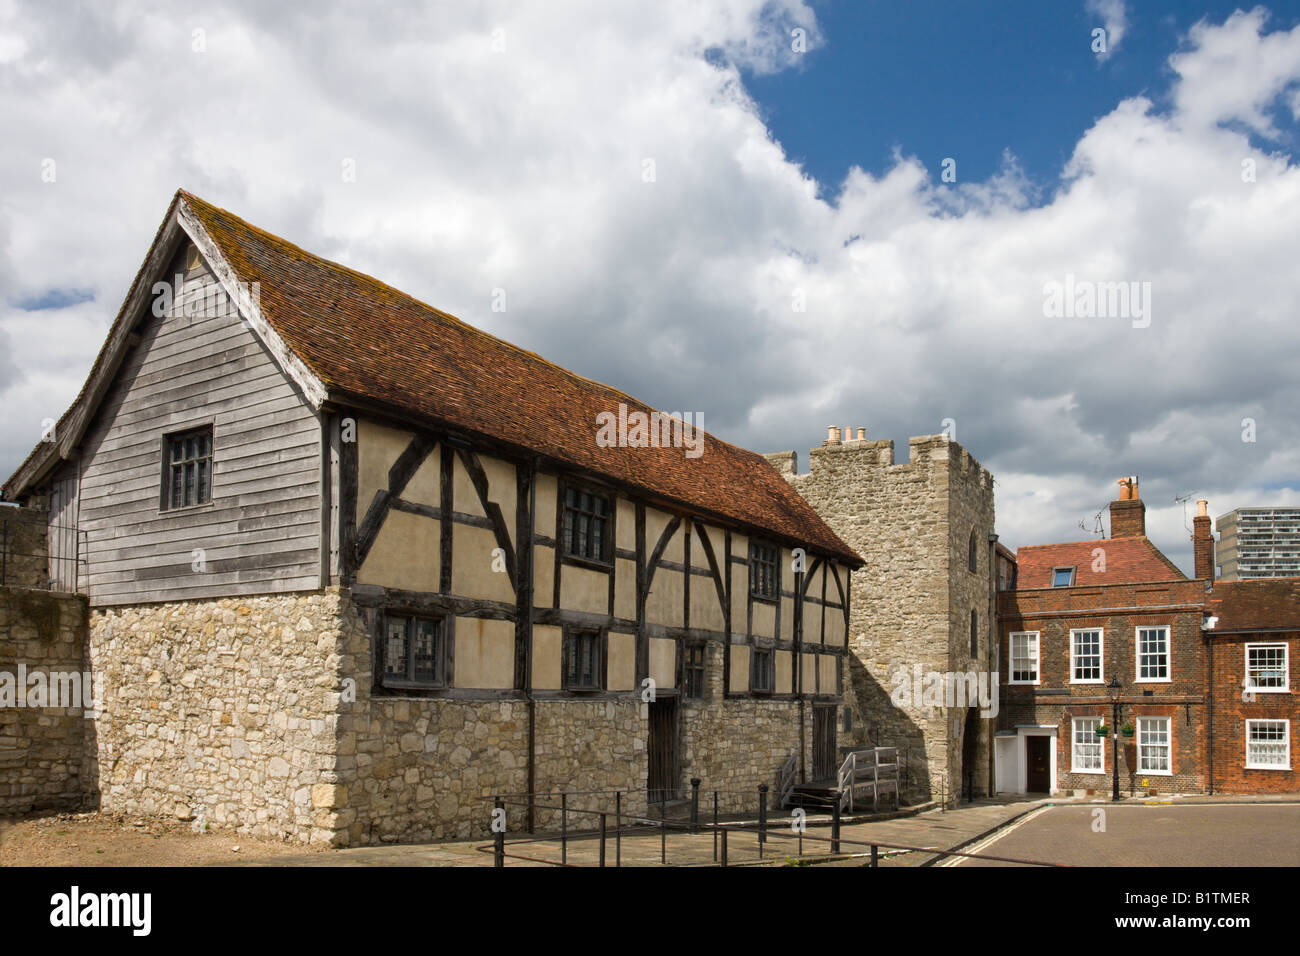 Tudor Merchants Hall and Westgate which make up part of the ancient walled city of Southampton Hampshire England - Stock Image